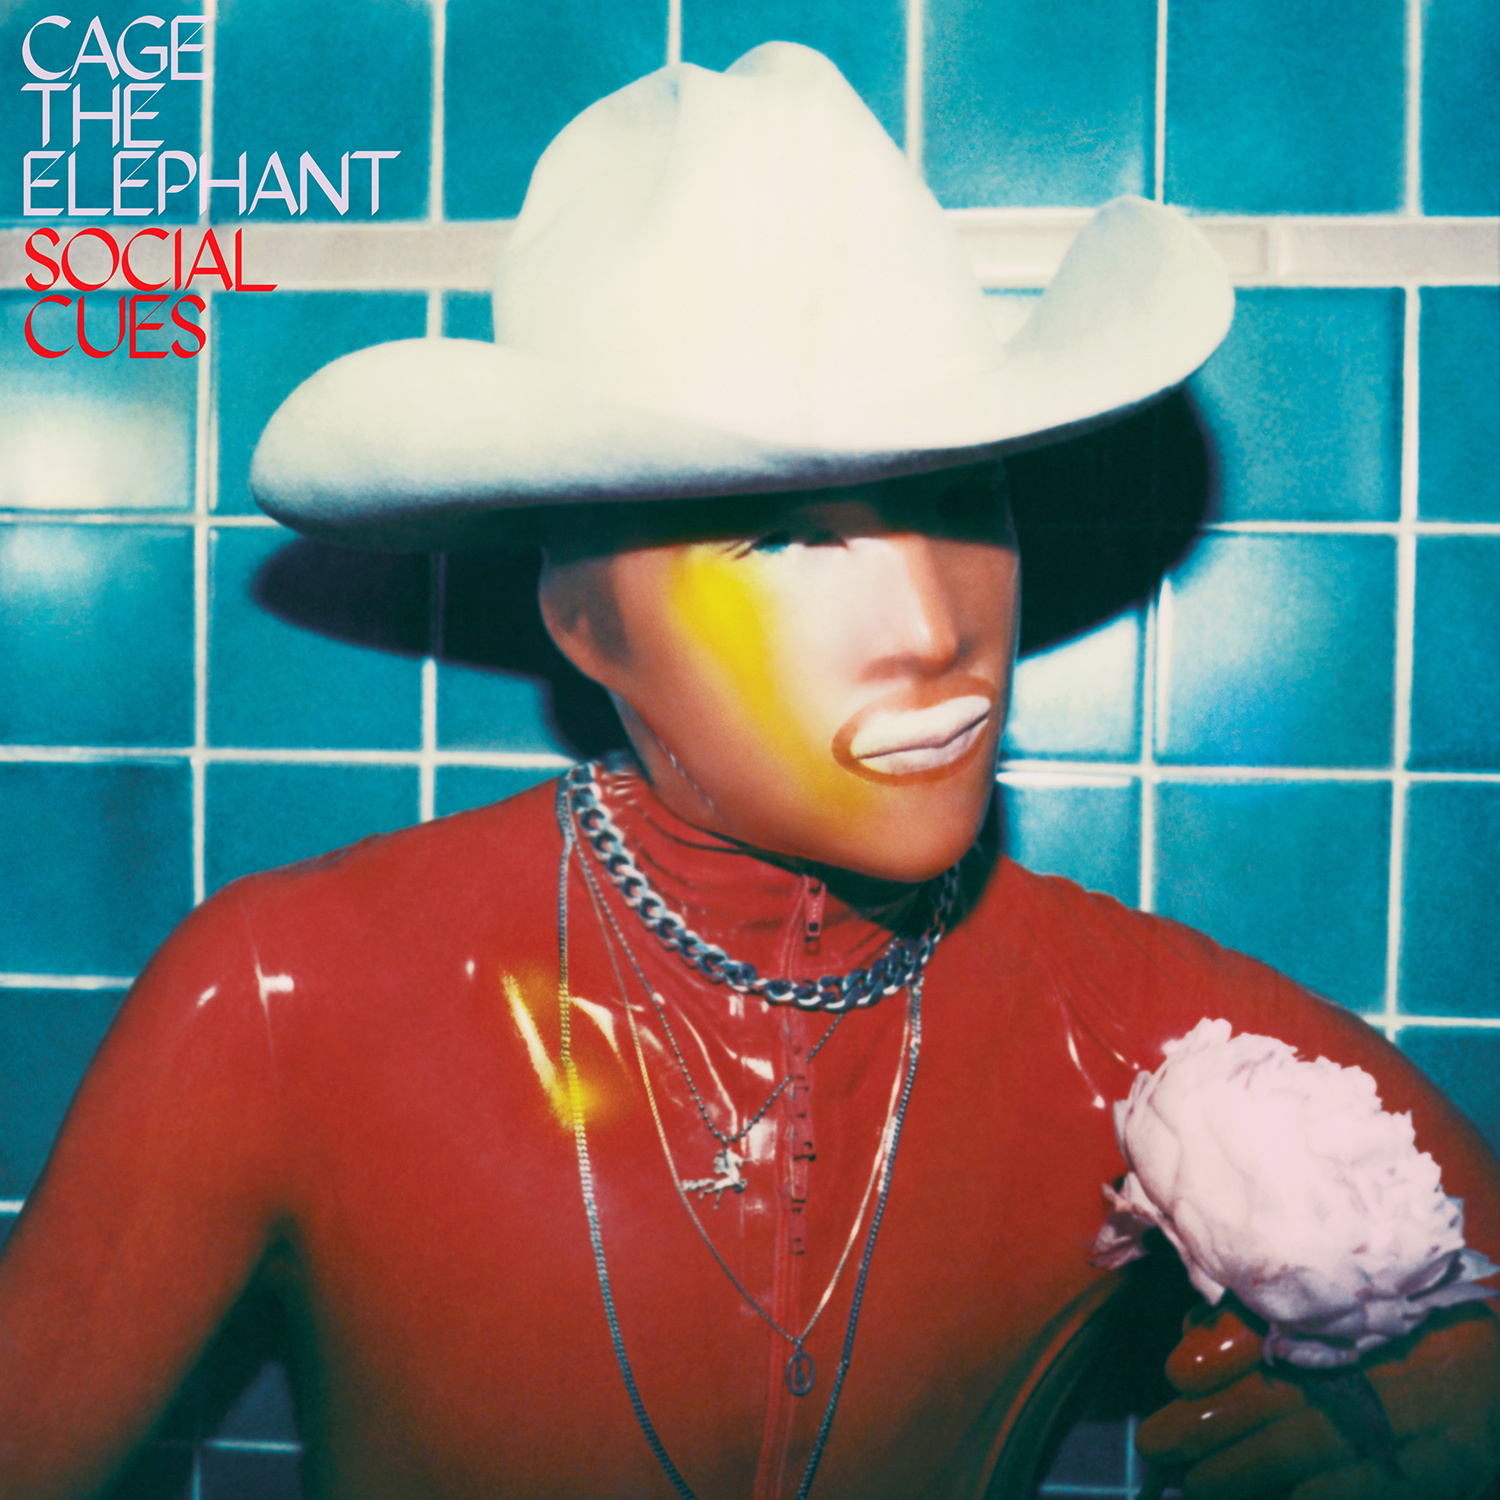 Cage The Elephant - Social Cues [Indie Exclusive Limited Edition Dark Green LP]